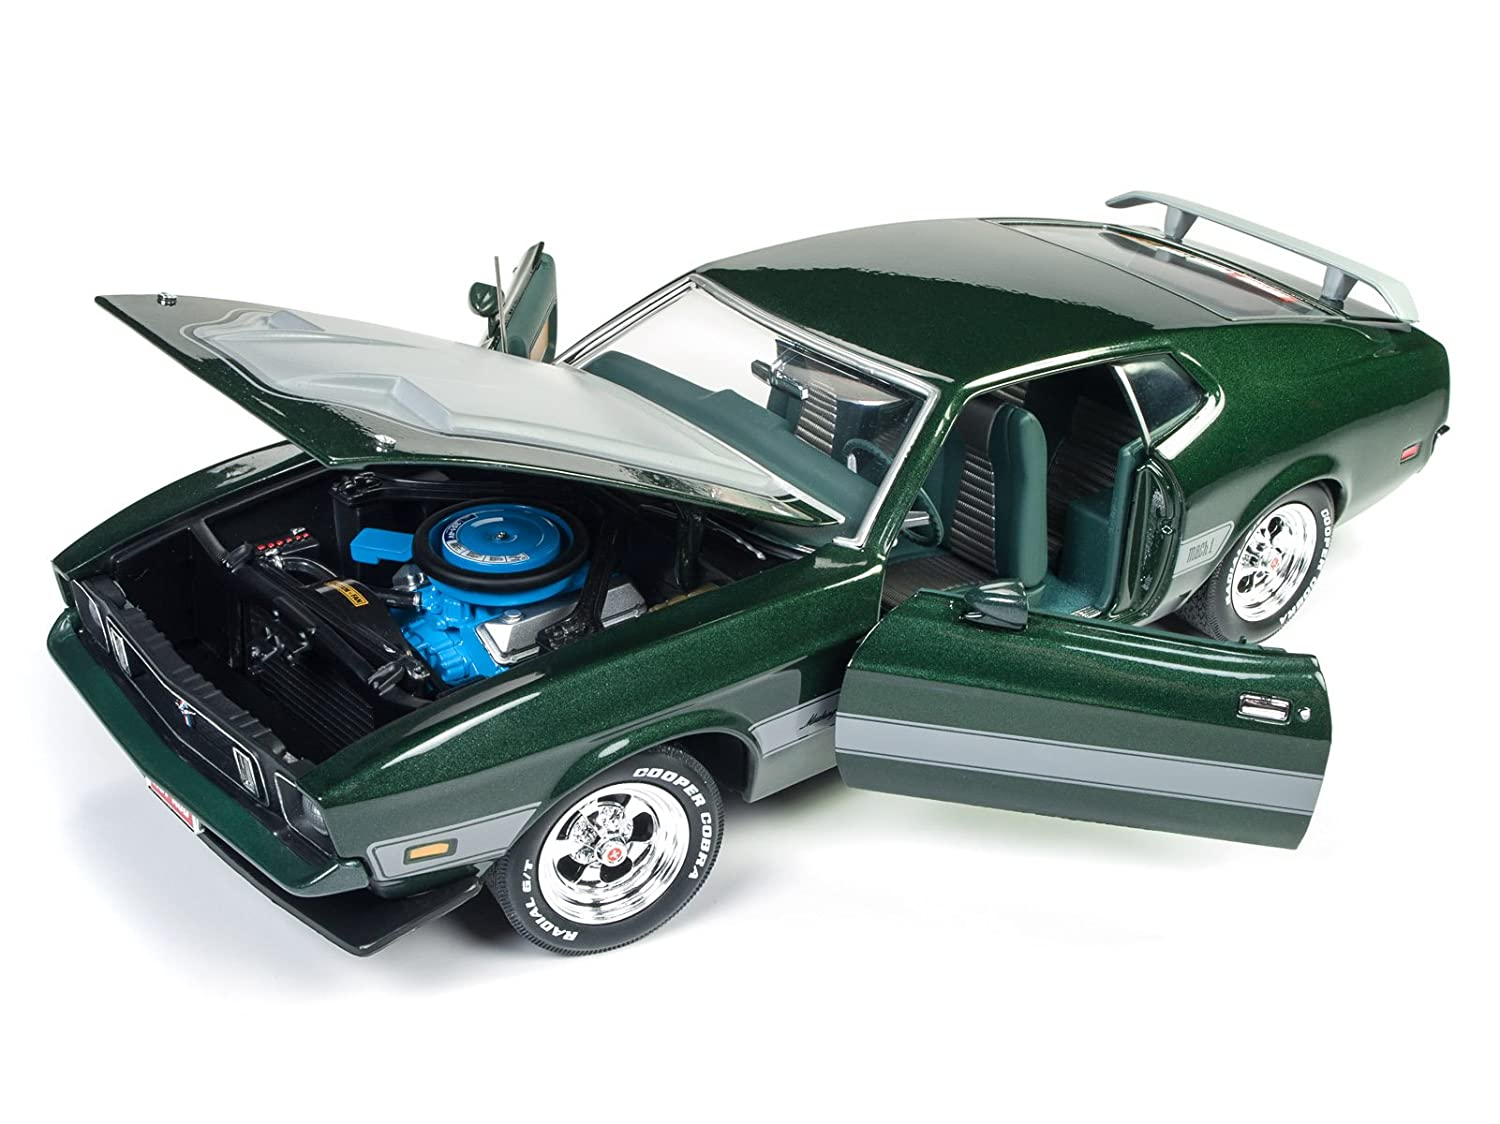 1973 ford mustang mach 1 dark green with silver stripes from hot rod magazine limited edition to 1002 pieces 1 18 diecast model car by autoworld amm1144